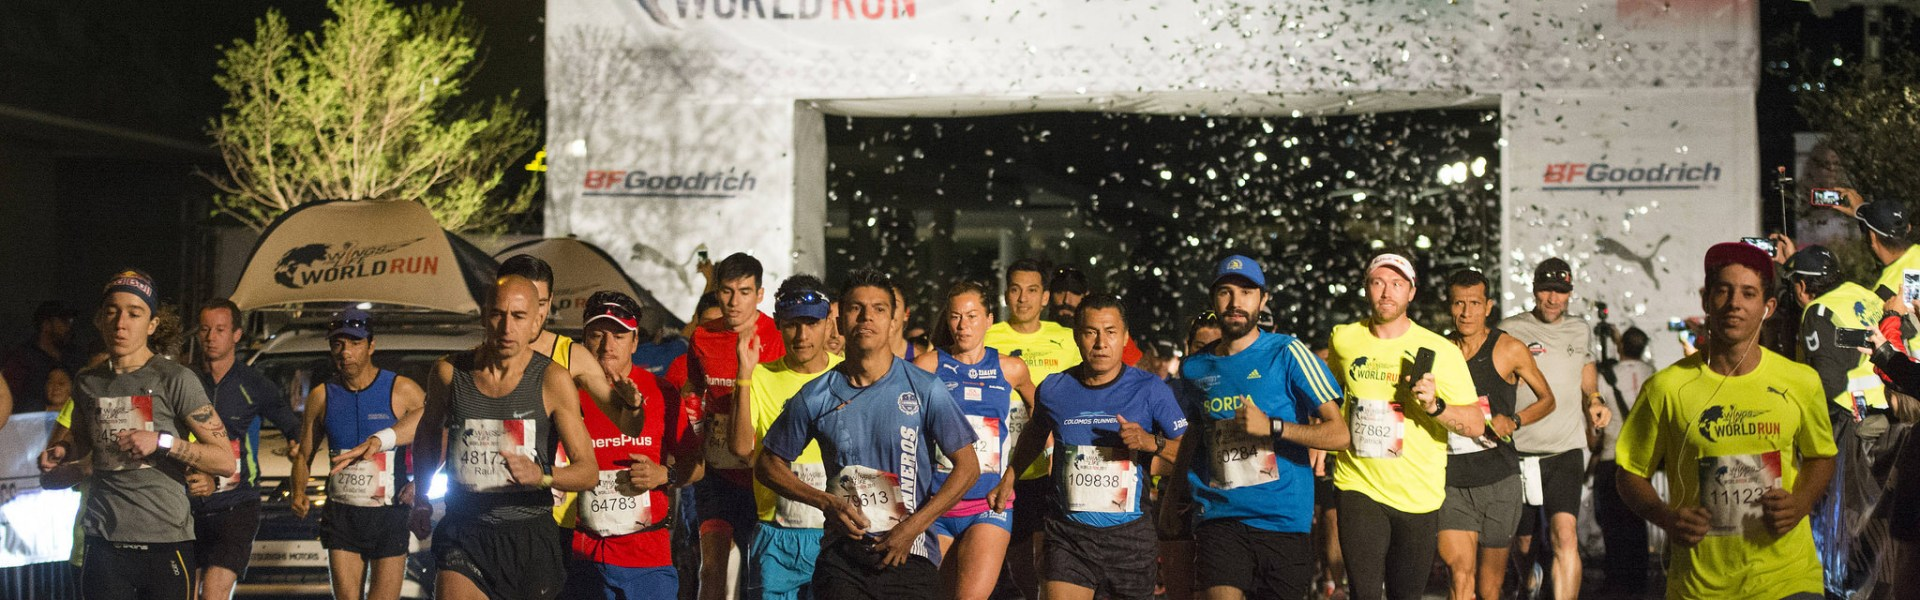 wings for life world run mexico guadalajara monterrey 2018